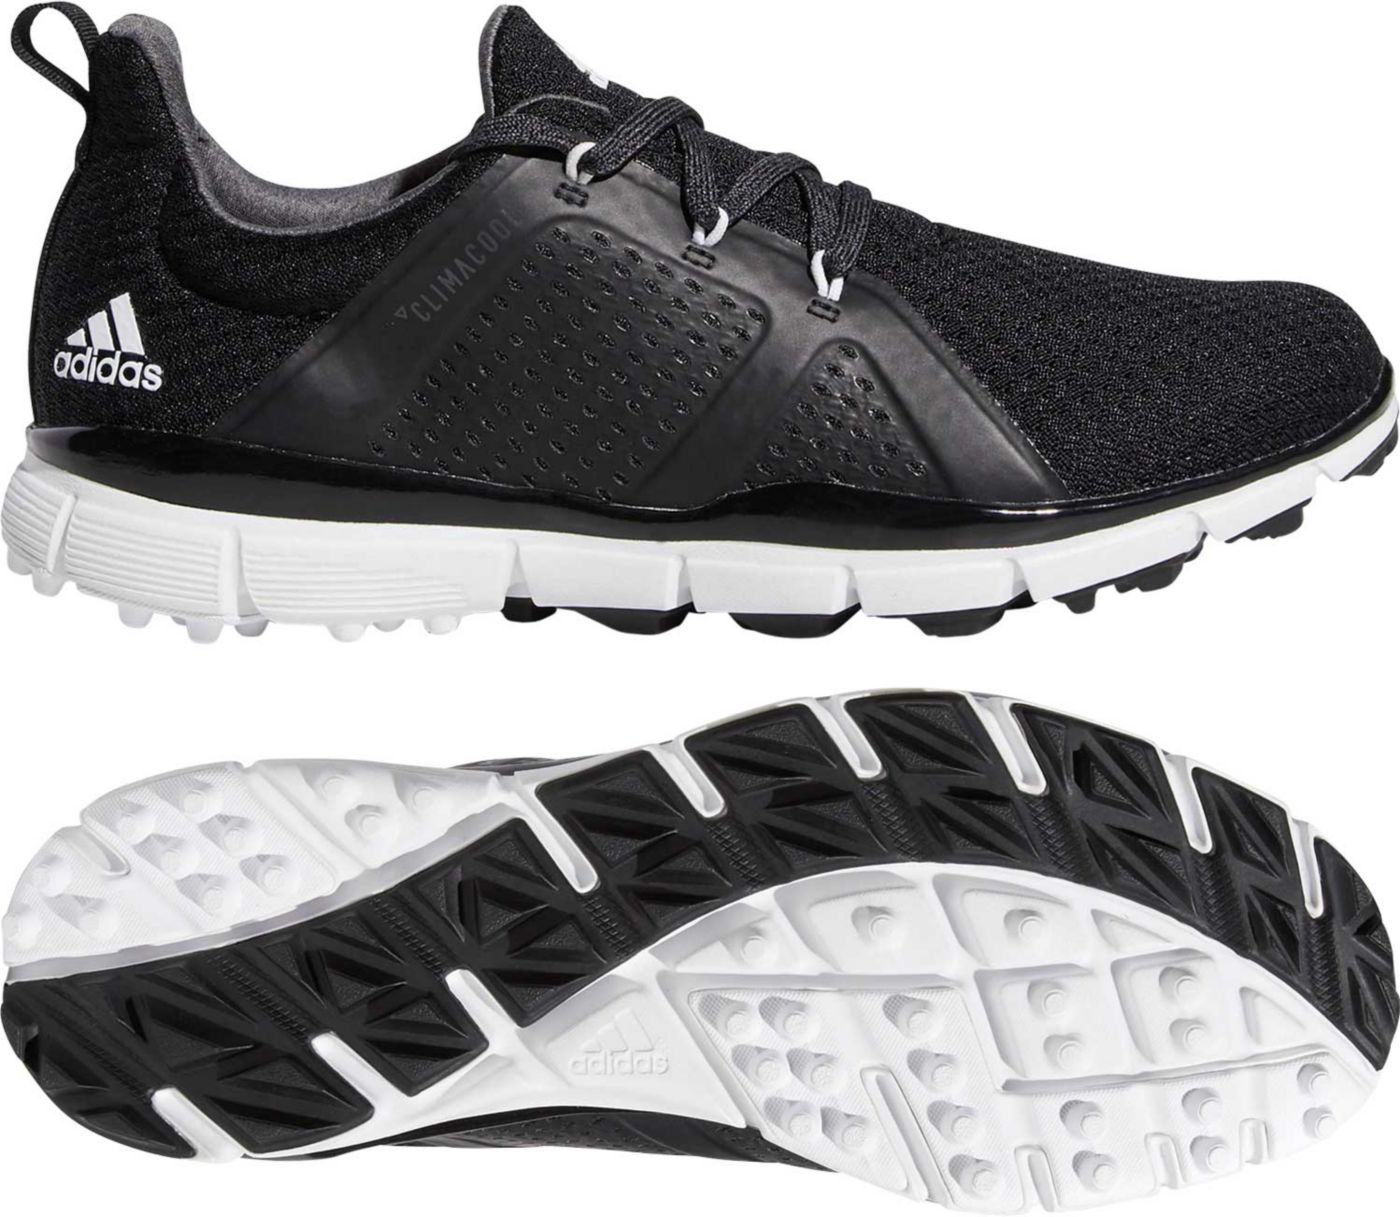 adidas Women's climacool Cage Golf Shoes